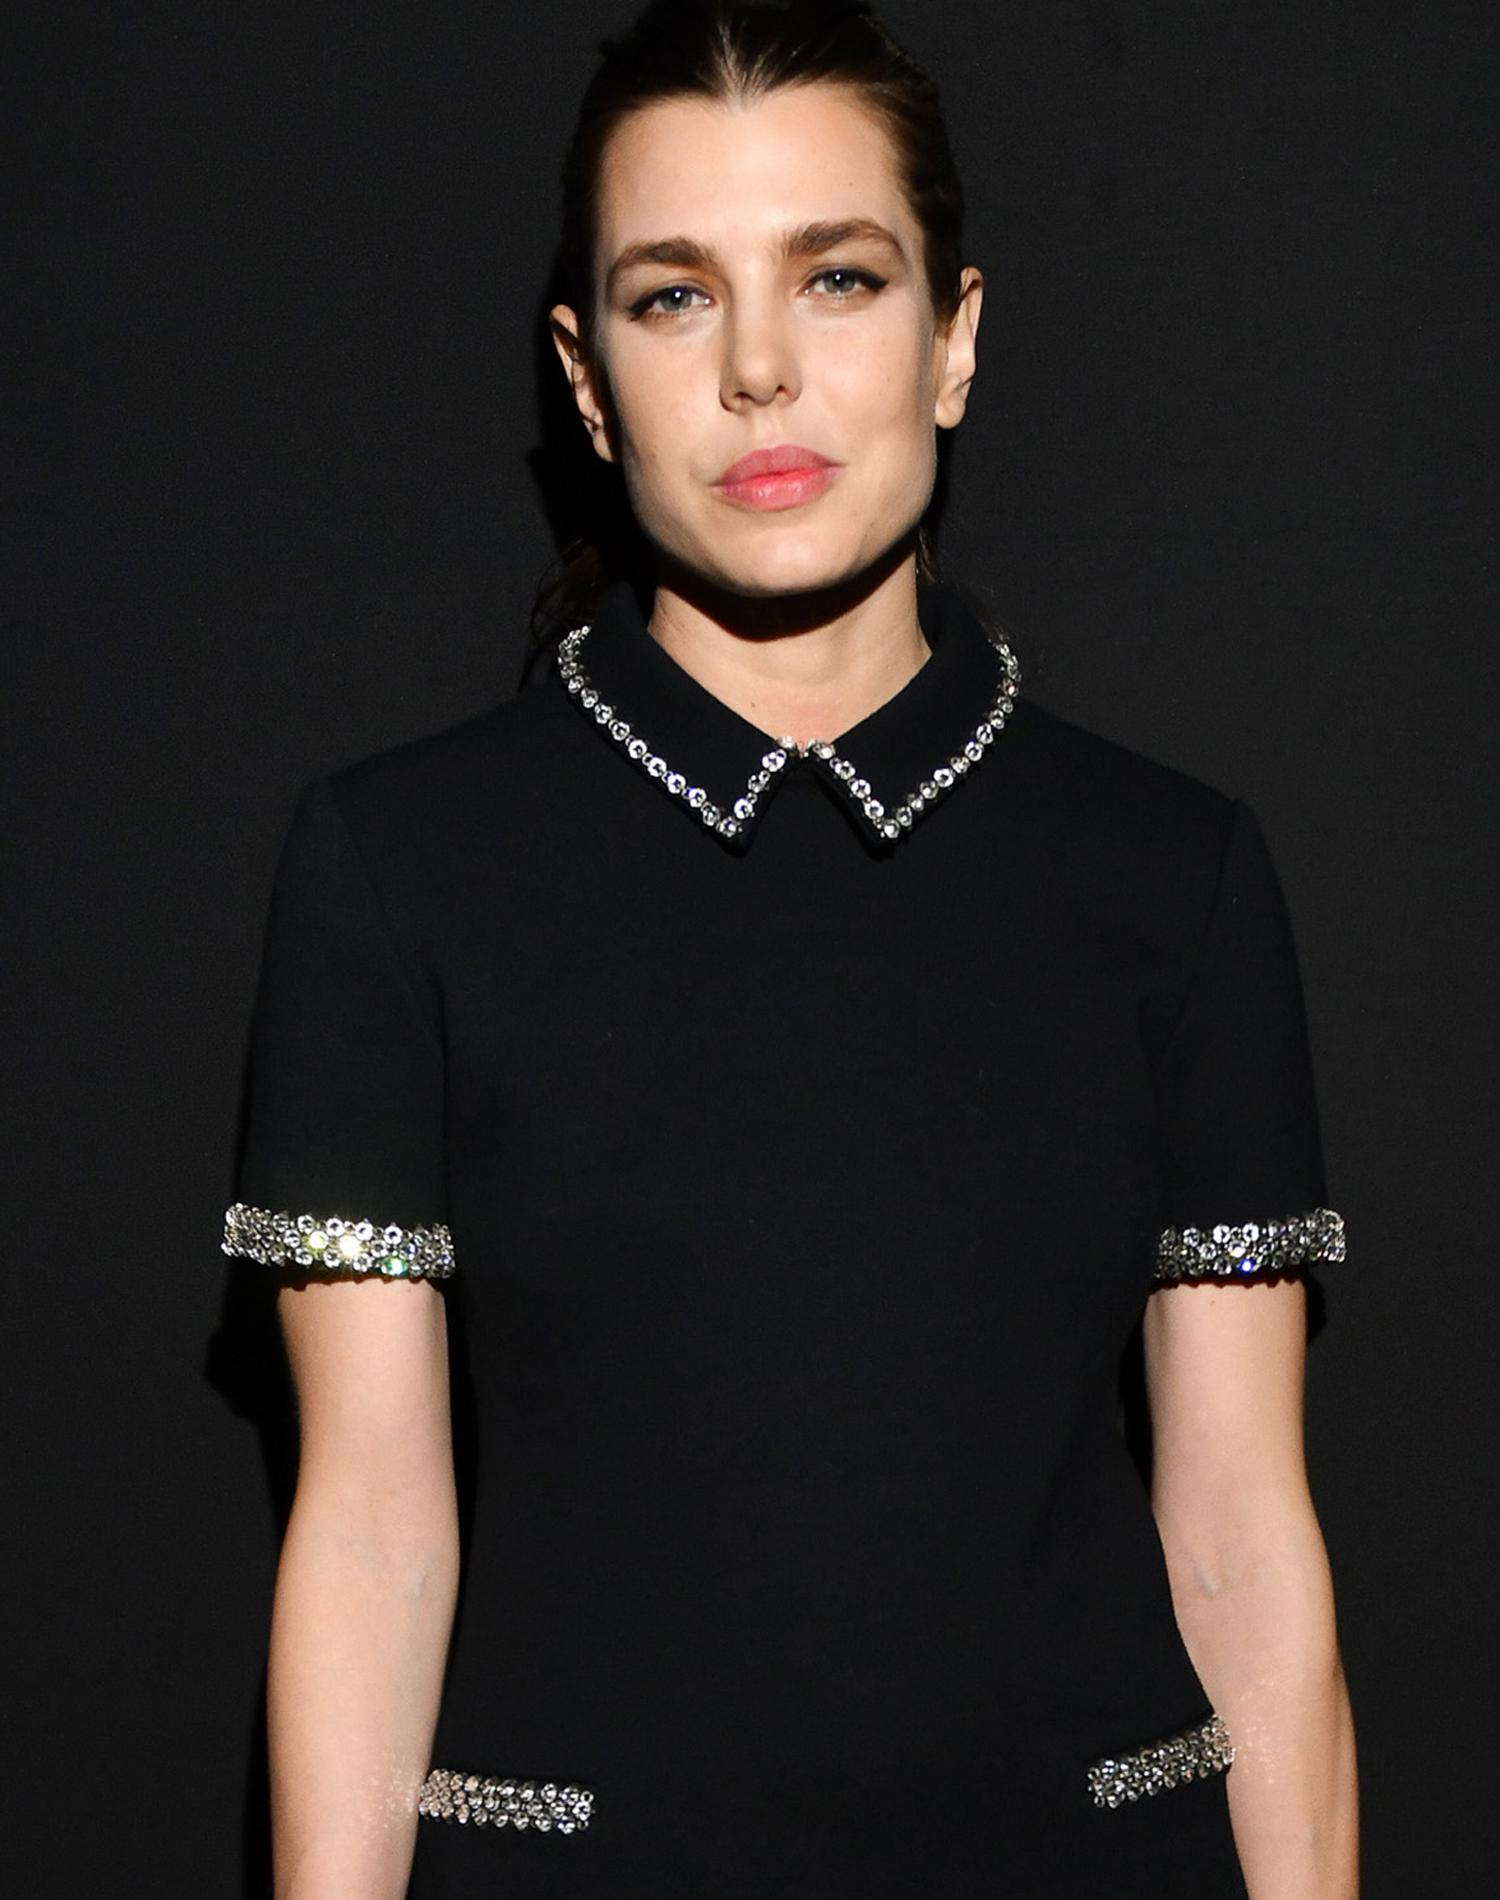 Charlotte Casiraghi, coproductrice du film